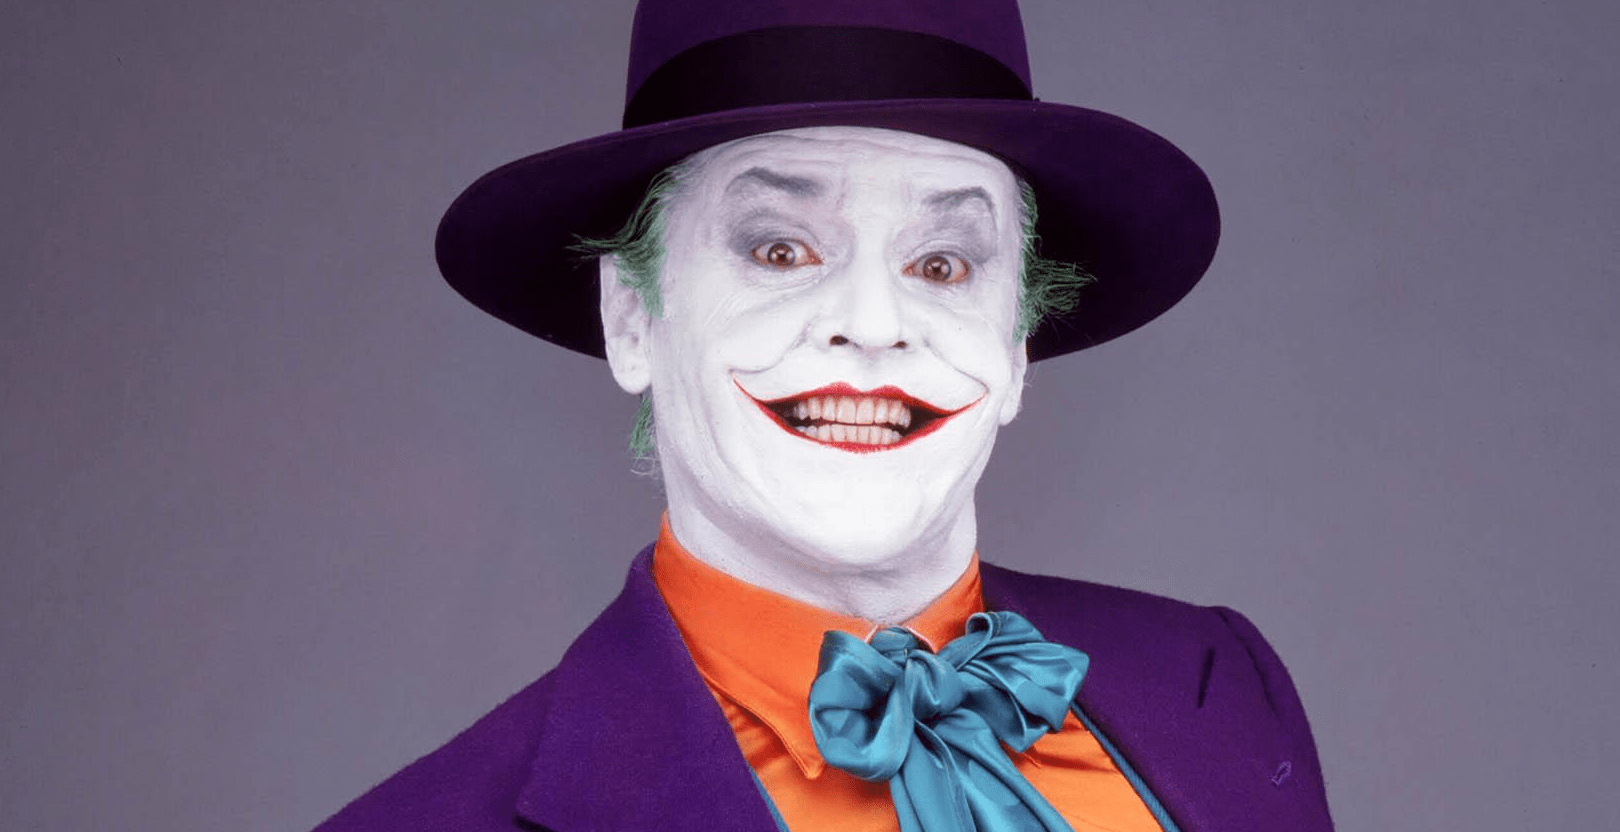 WB Reportedly Interested In Leonardo DiCaprio As The Joker